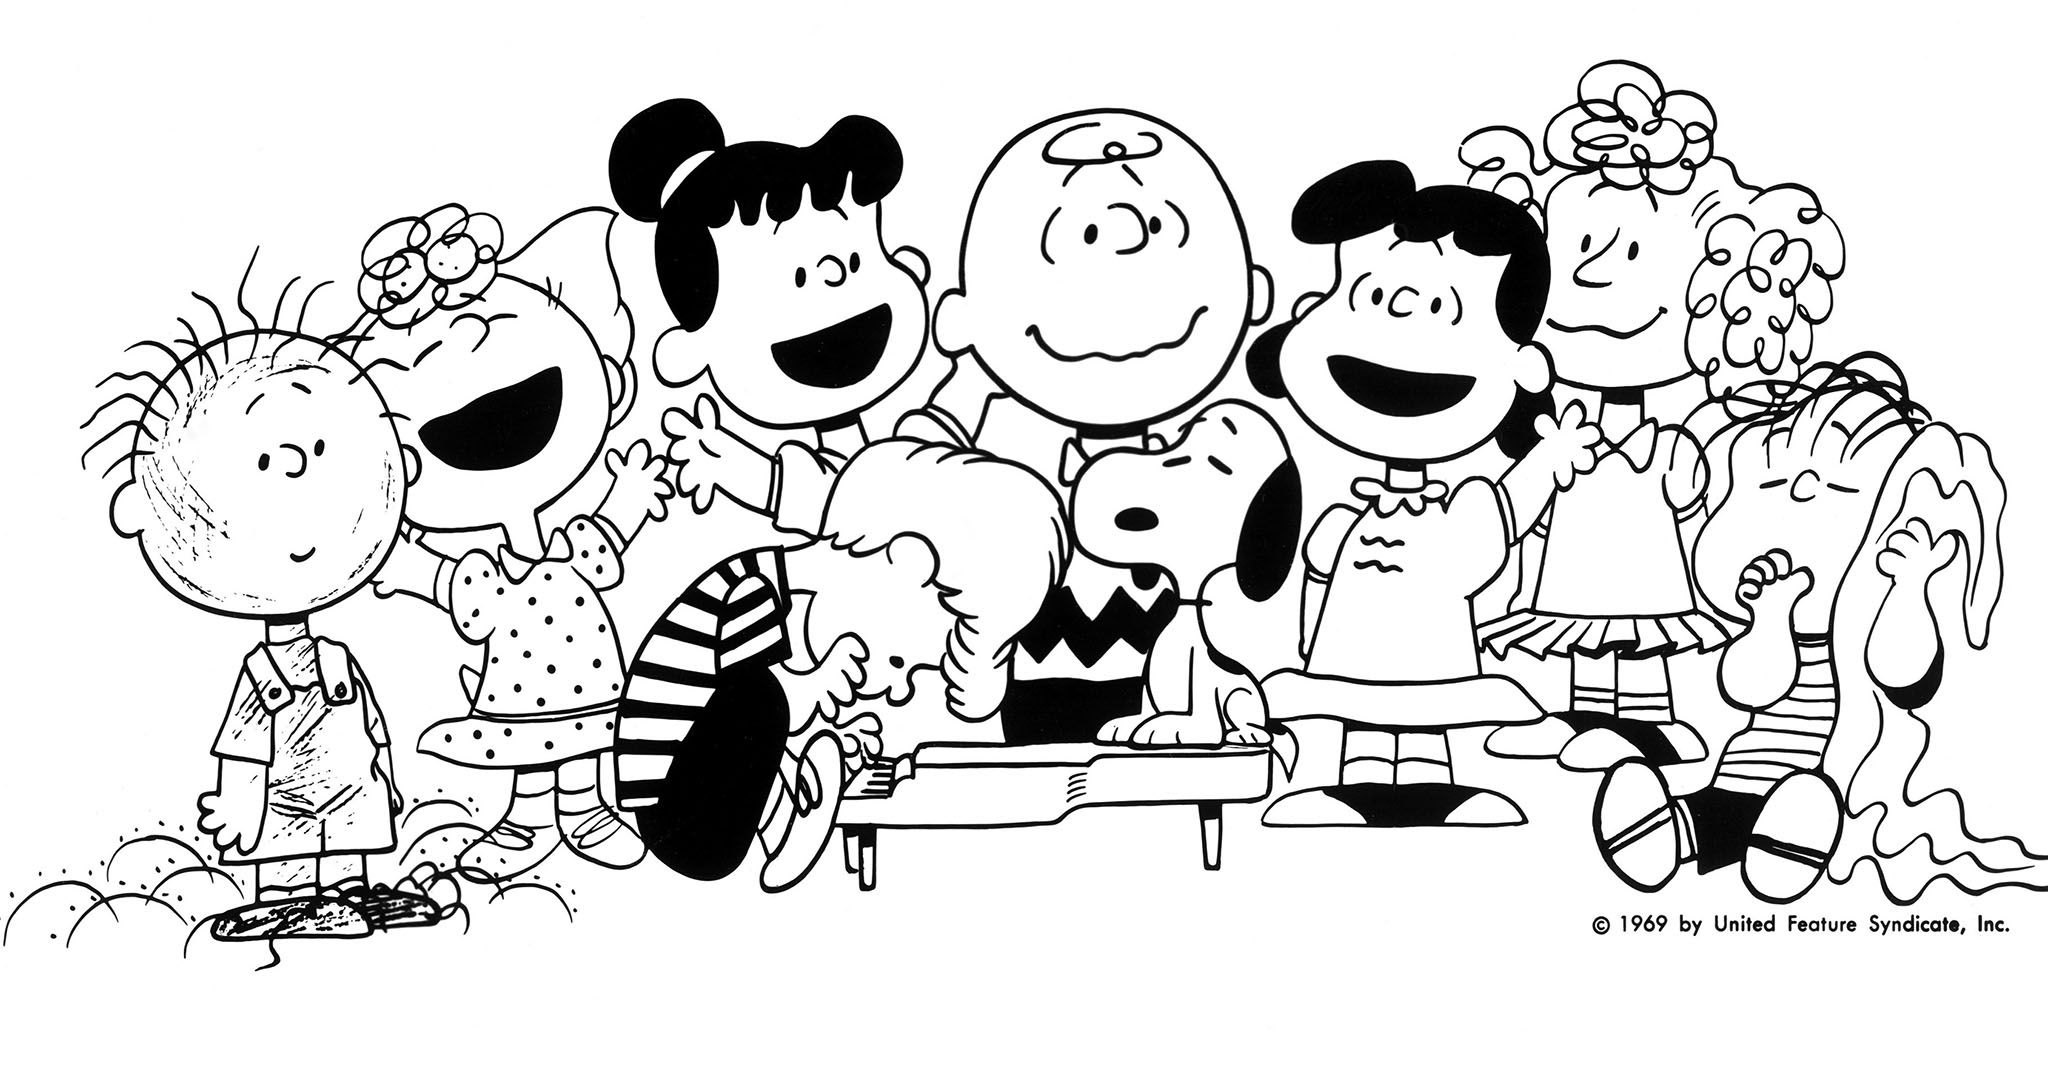 peanuts characters coloring pages - peanut character clipart black and white clipground